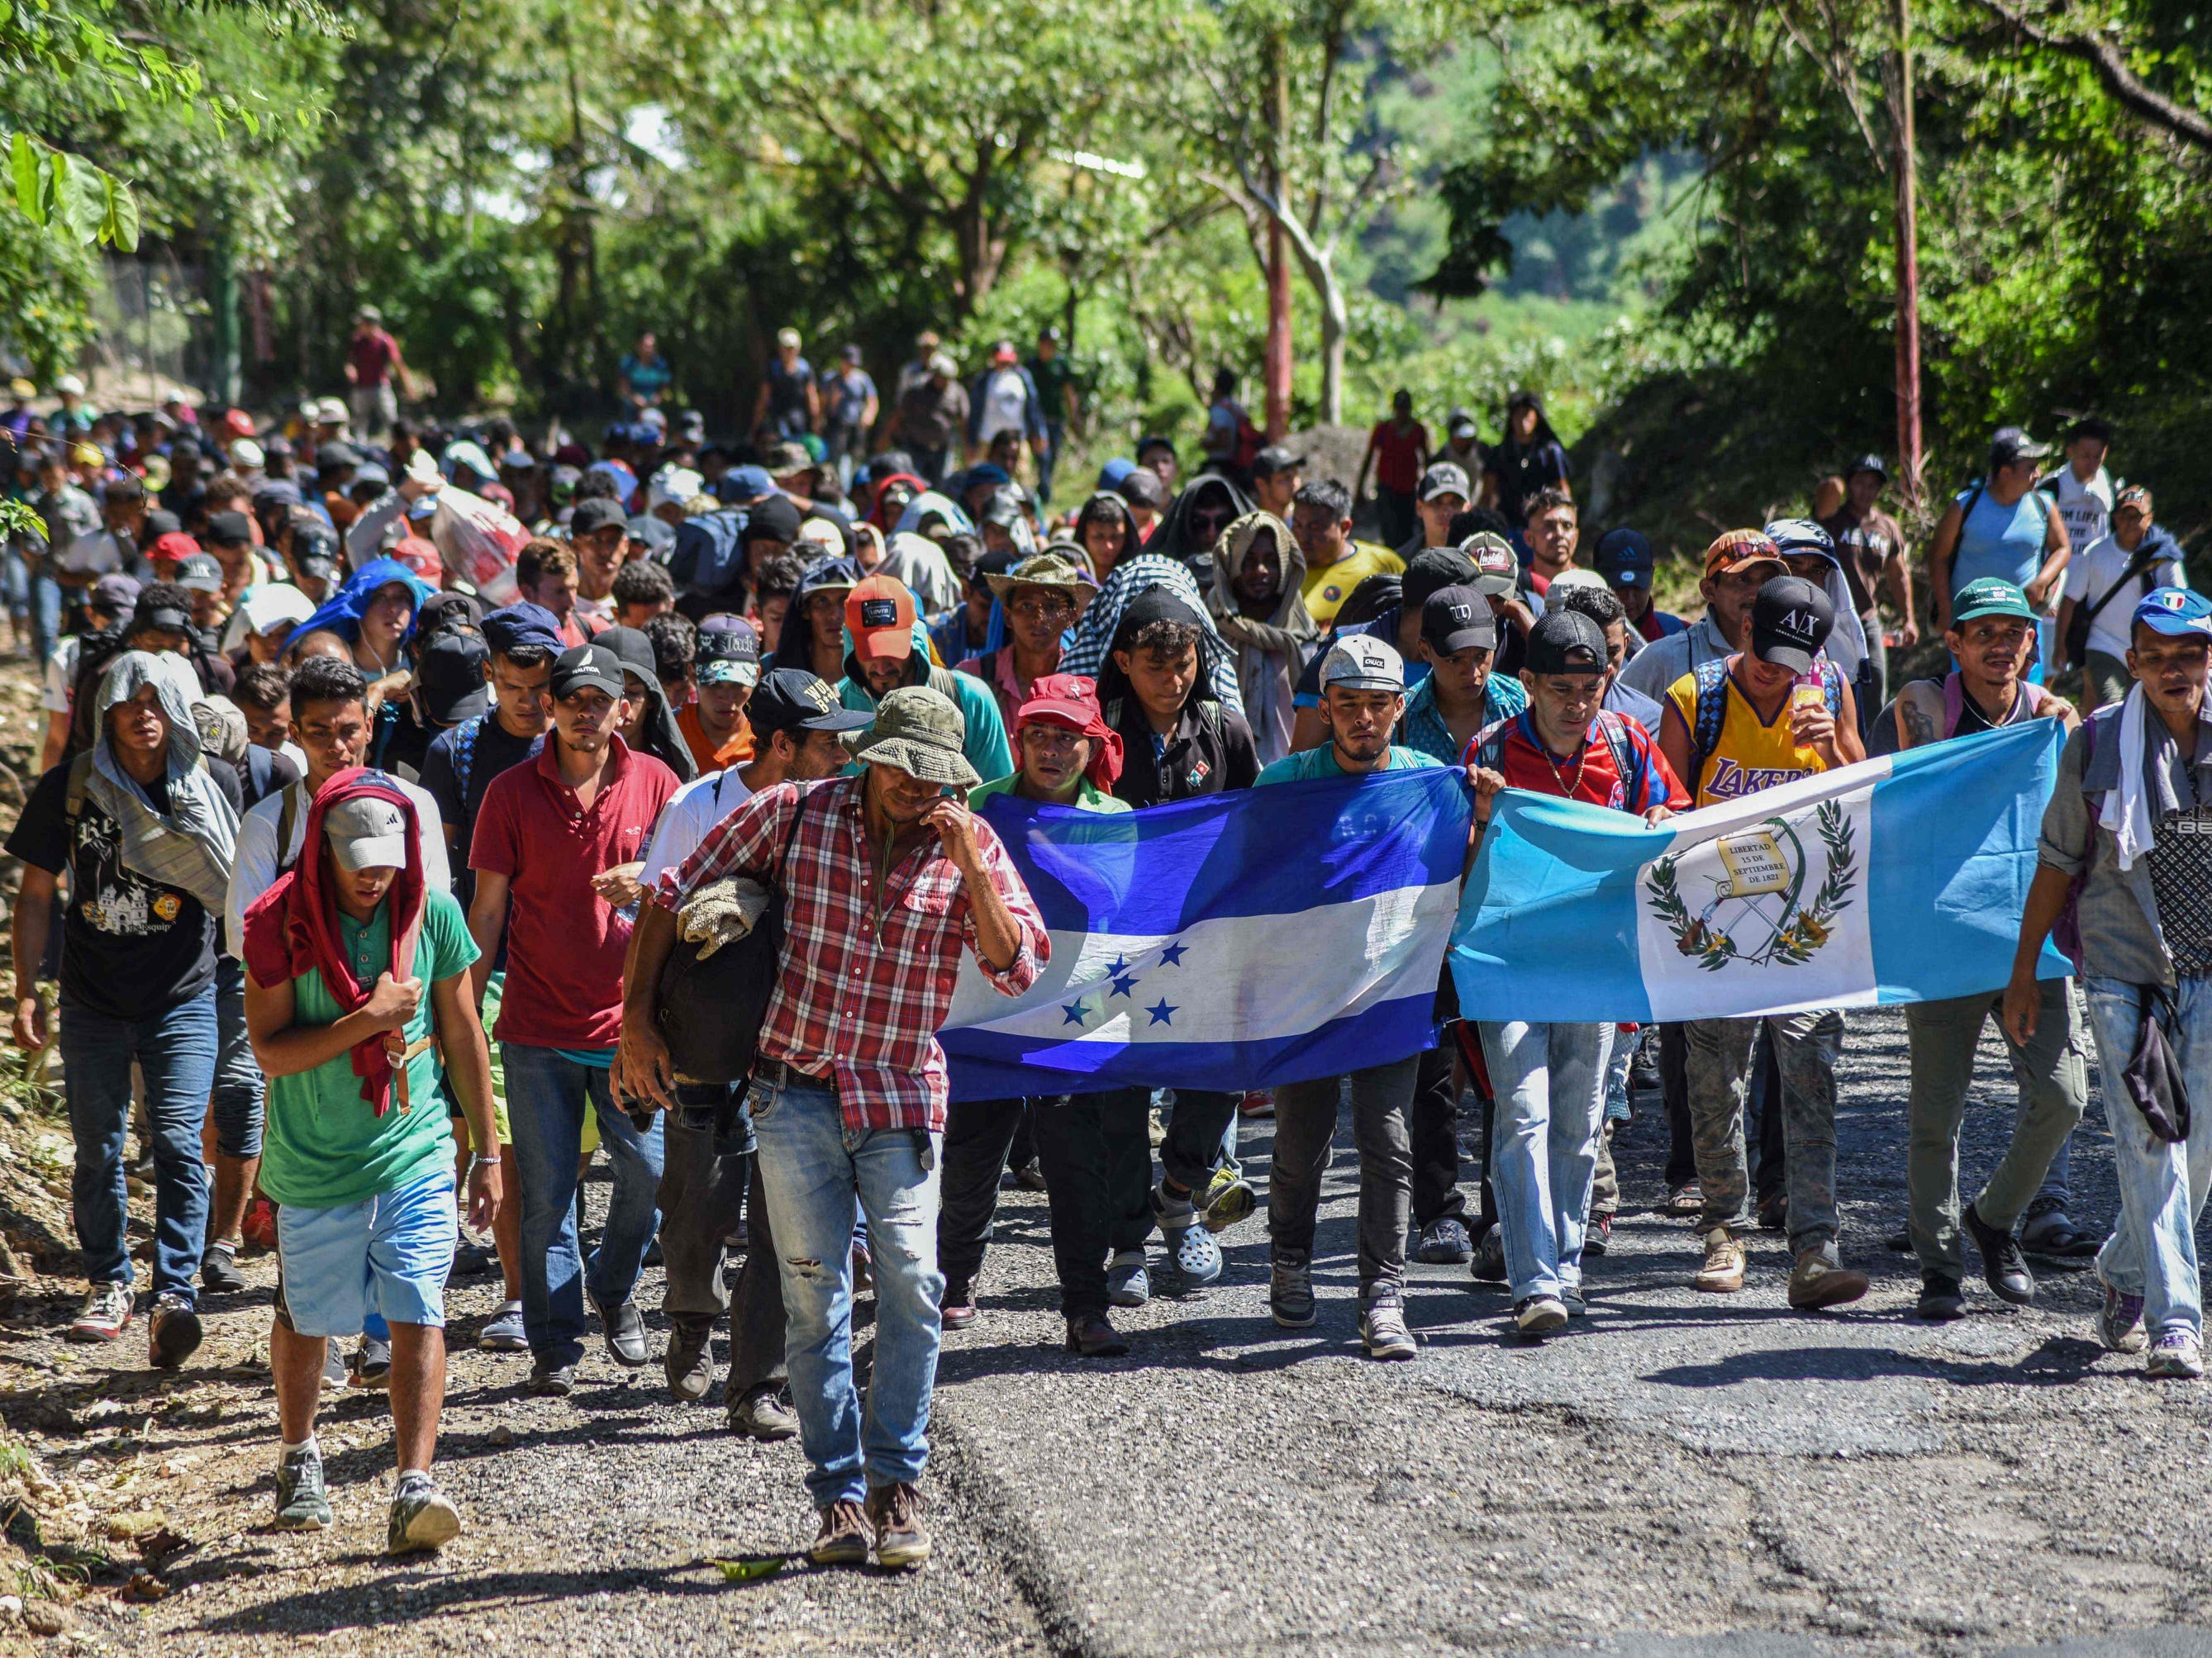 Migrants take part in a new caravan, Monday, heading to the US with Honduran and Guatemalan national flags in Quezaltepeque, Chiquimula, Guatemala.